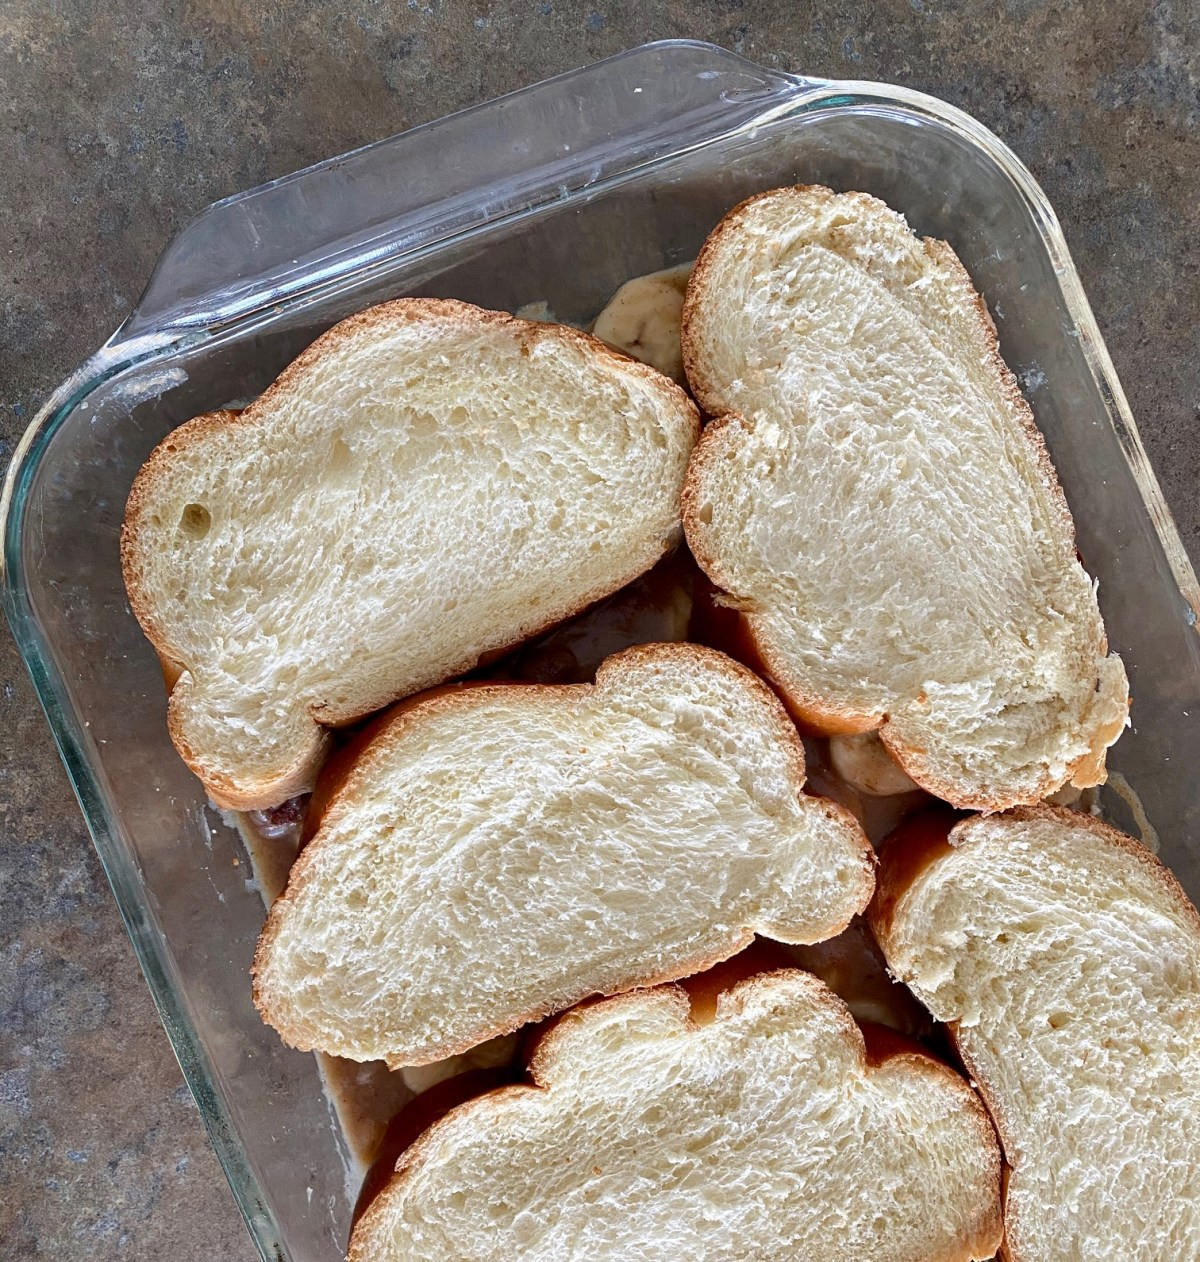 The banana mixture is added to a 13X9-inch casserole dish and then topped with Challah bread slices. #bananasfosterfrenchtoast #bananasfosterrecipes #breaskfastrecipes #neworleansrecipes #frenchtoastcasserole #fattuesdaybreakfast